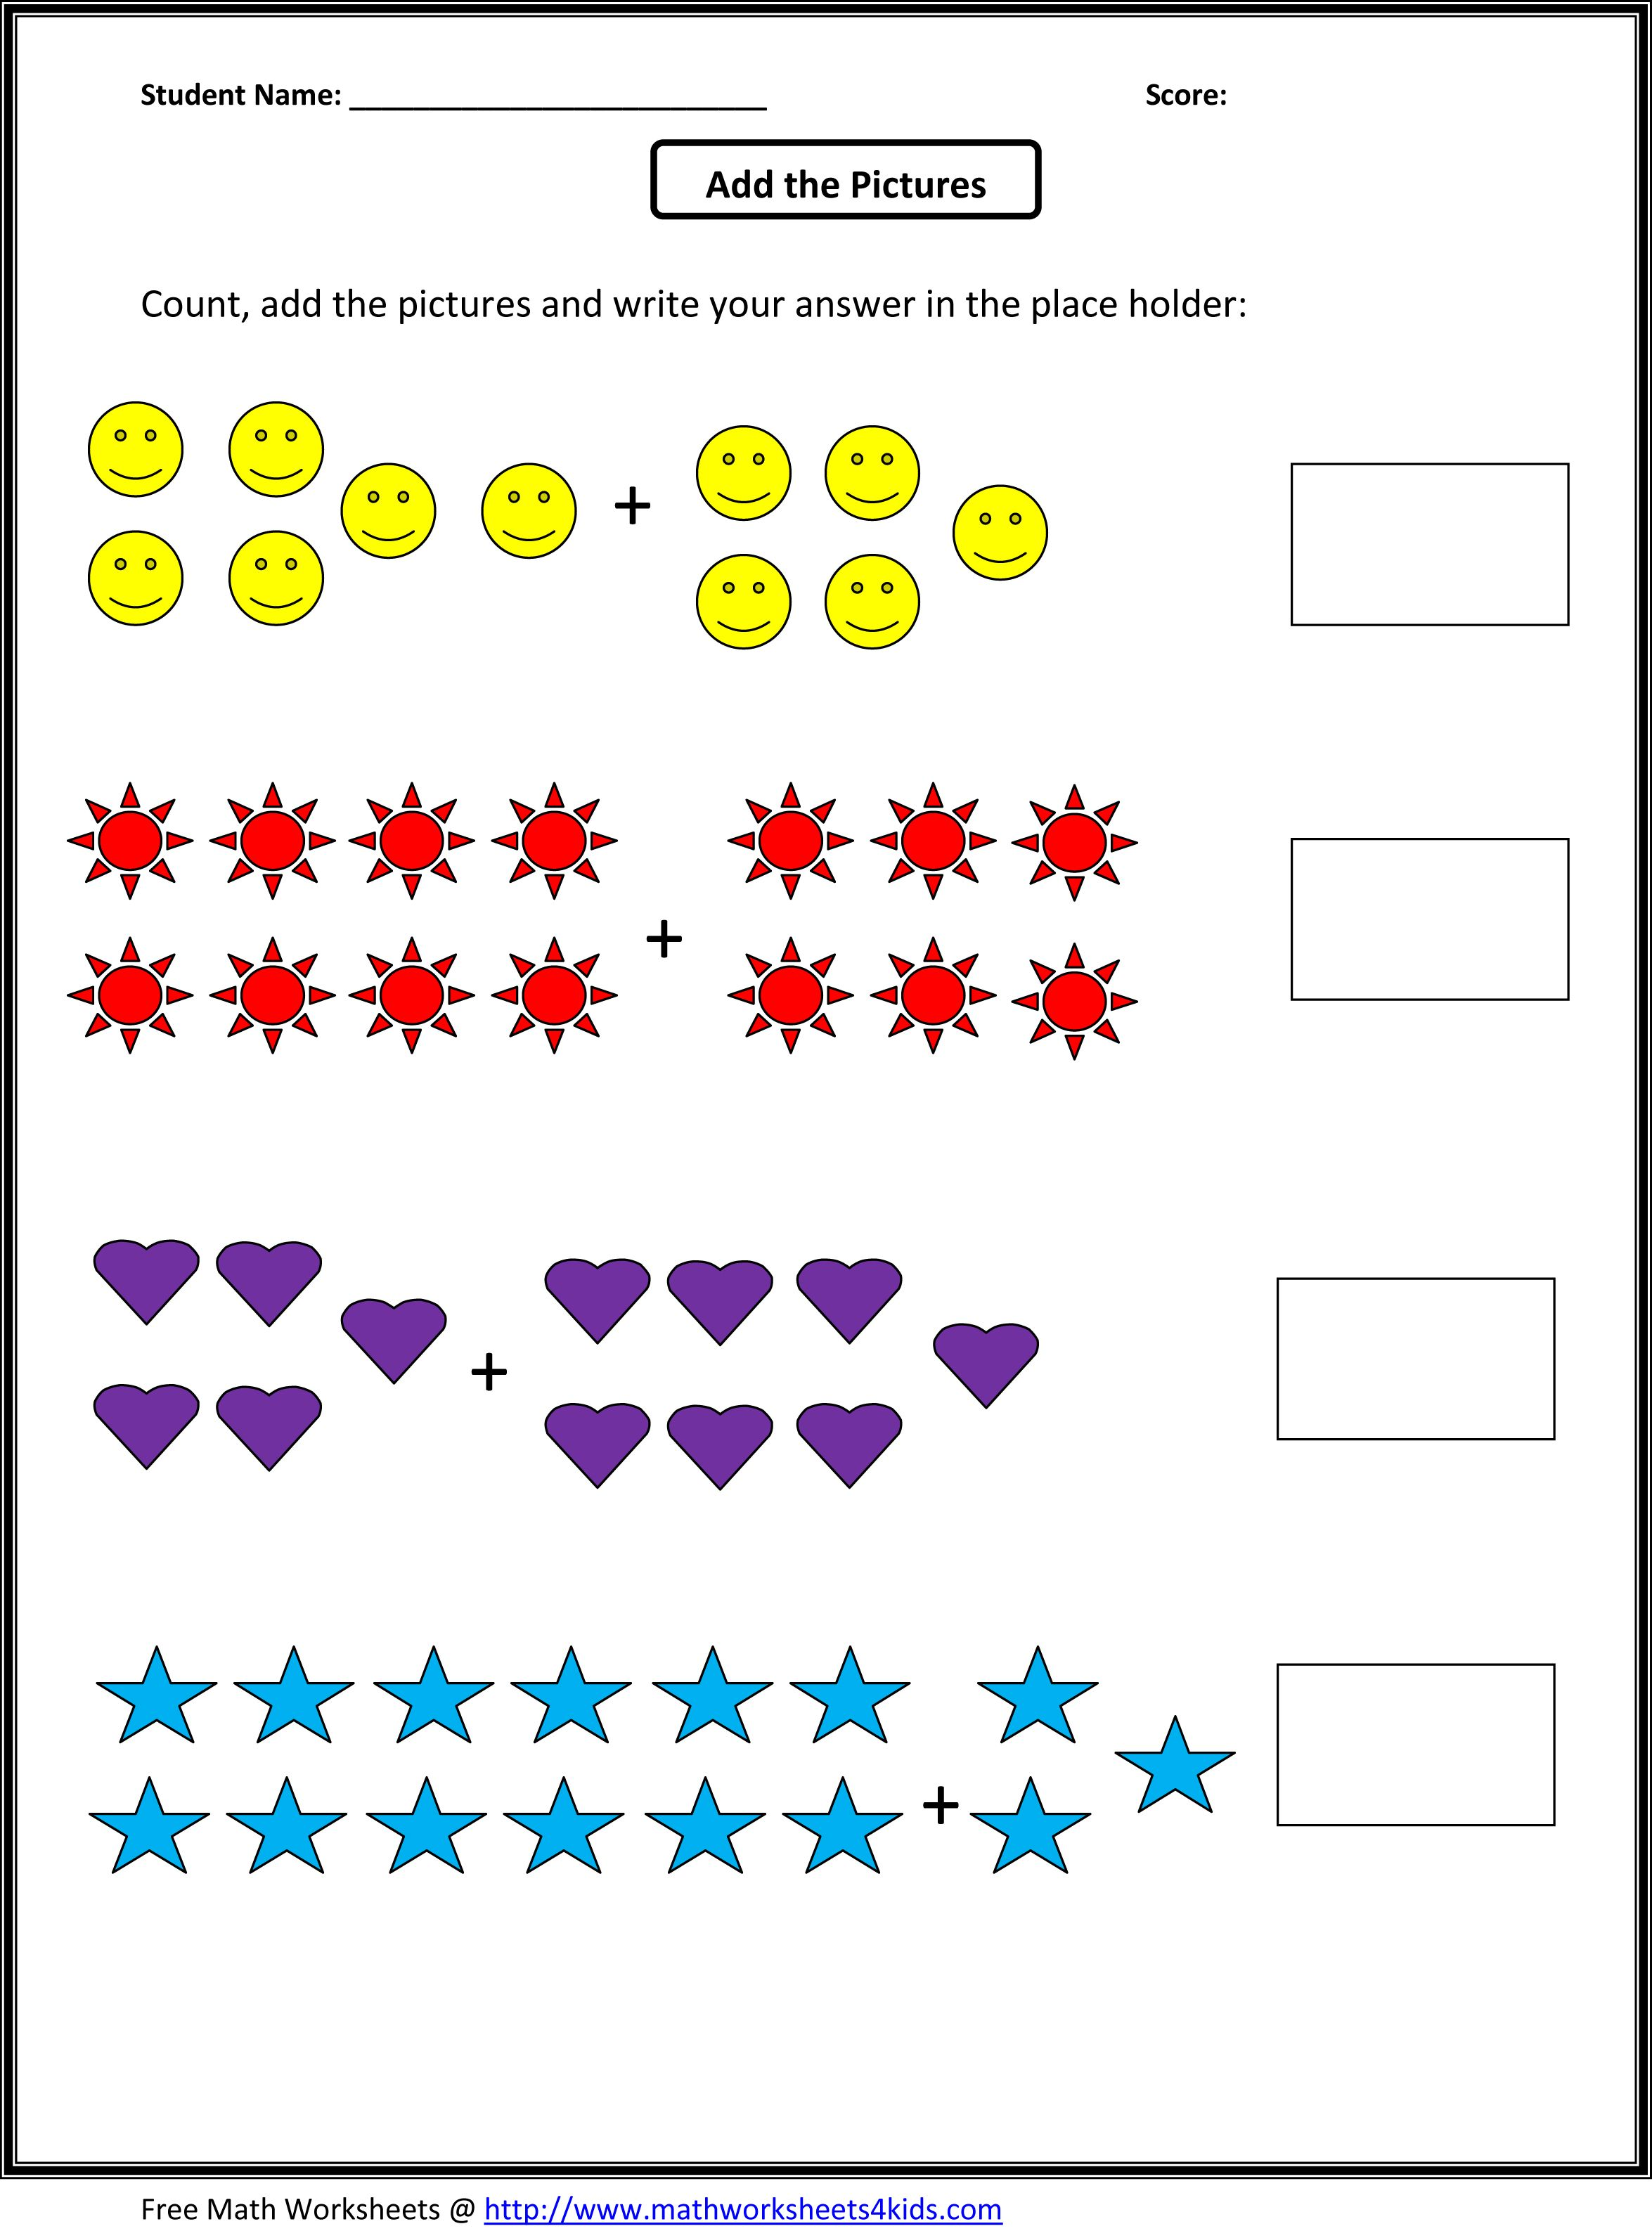 Worksheets Free Math Worksheets Grade 1 math worksheets for kids grade 1 coffemix free delwfg com